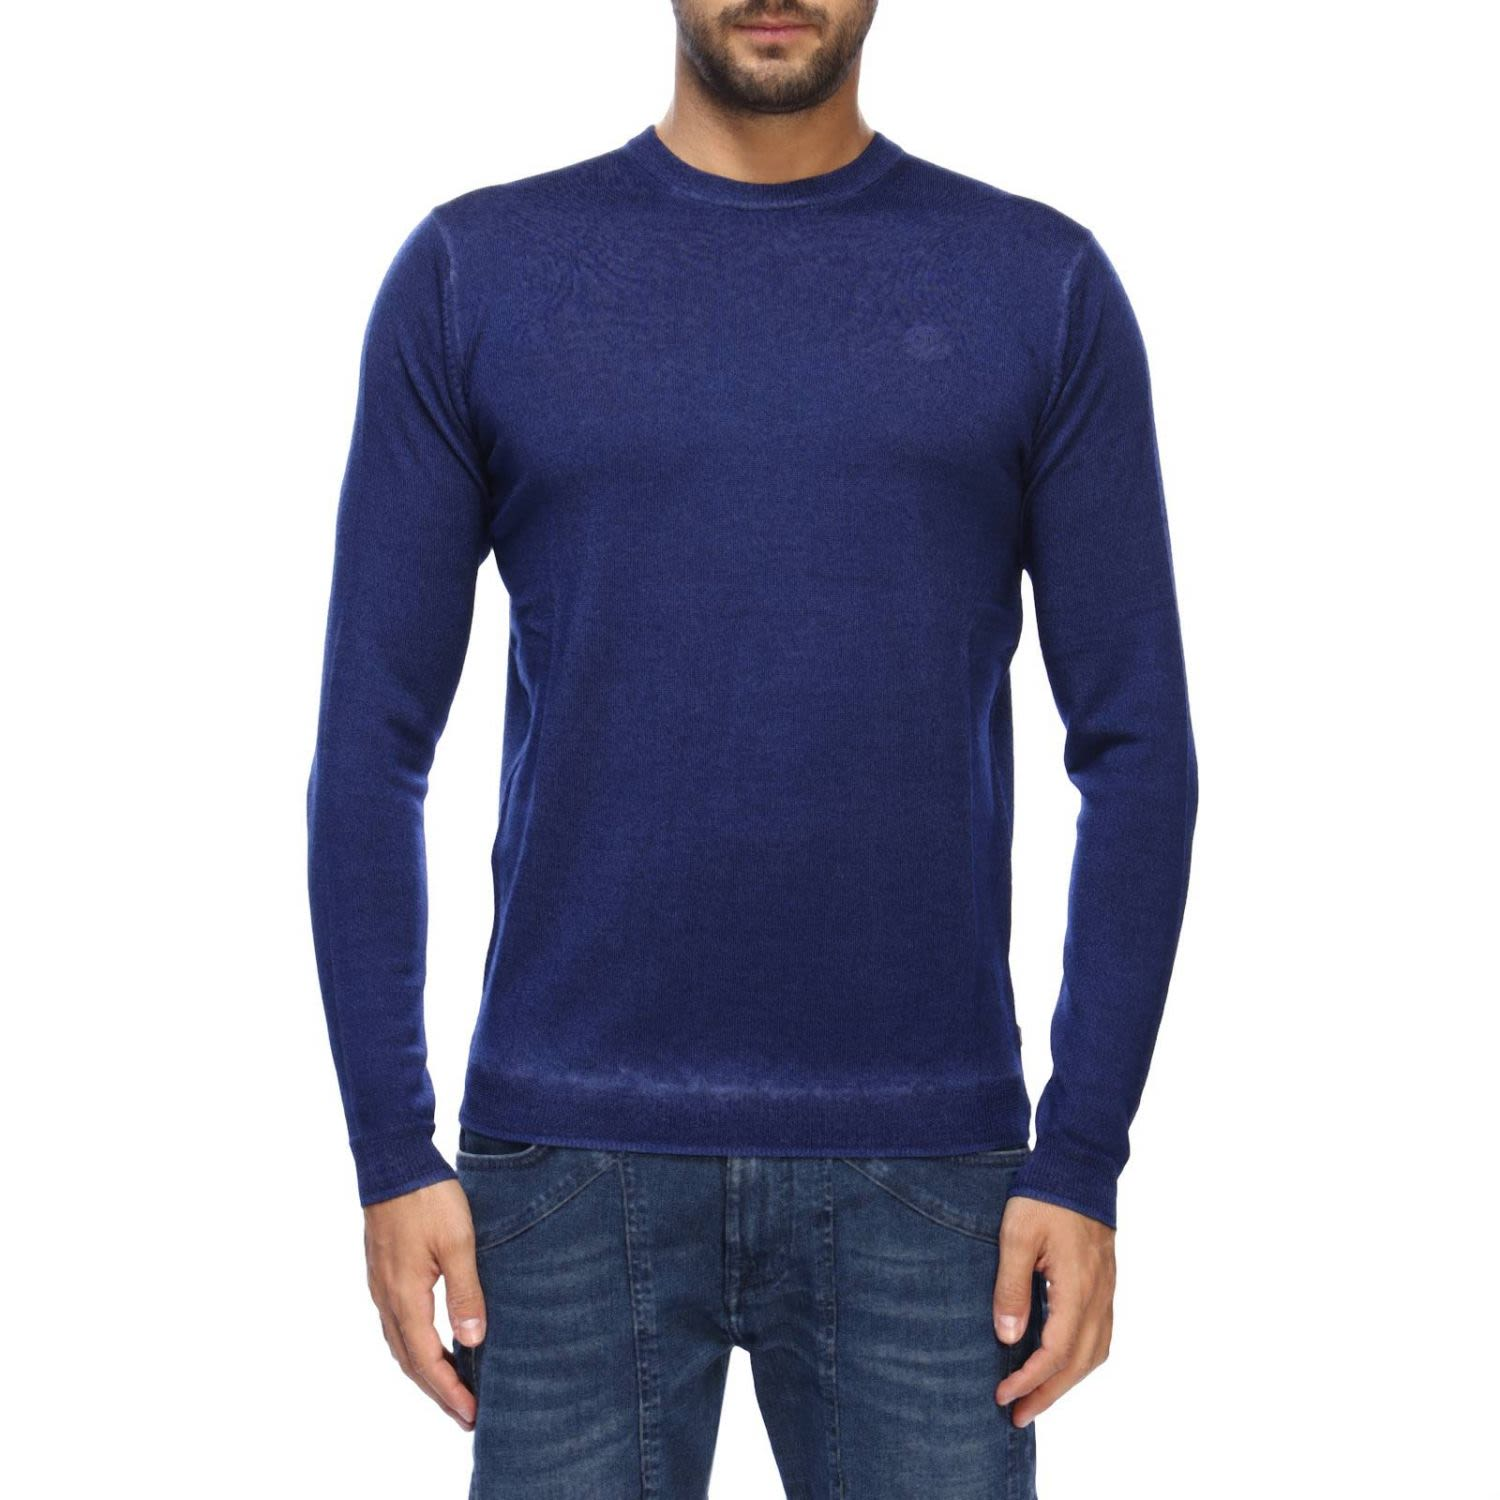 HENRI LLOYD Henri Lloyd in Royal Blue